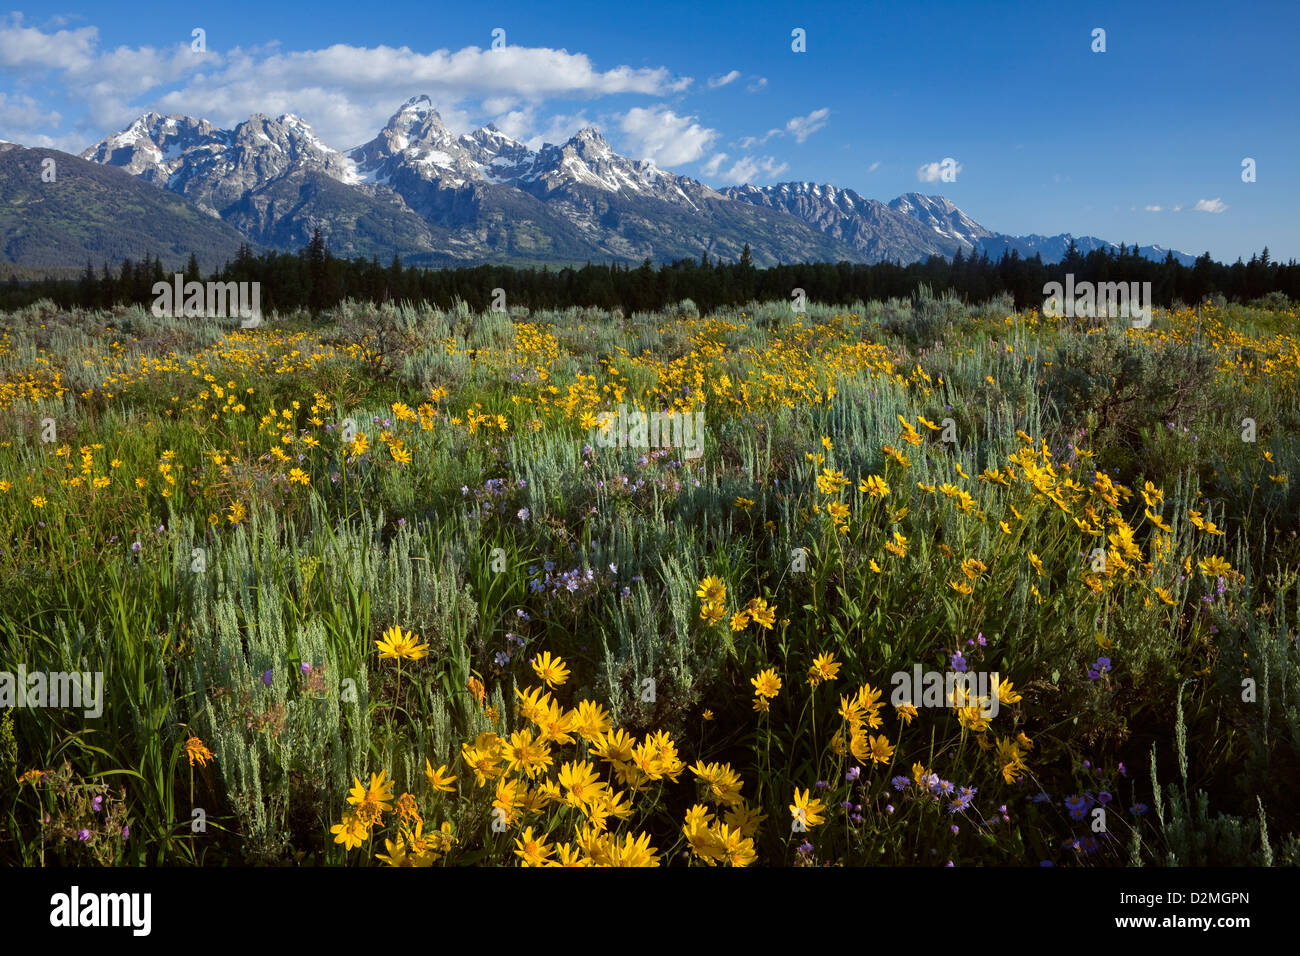 WY00298-00...WYOMING - View of the Teton Range from Blacktail Ponds Overlook in Grand Teton National Park. - Stock Image